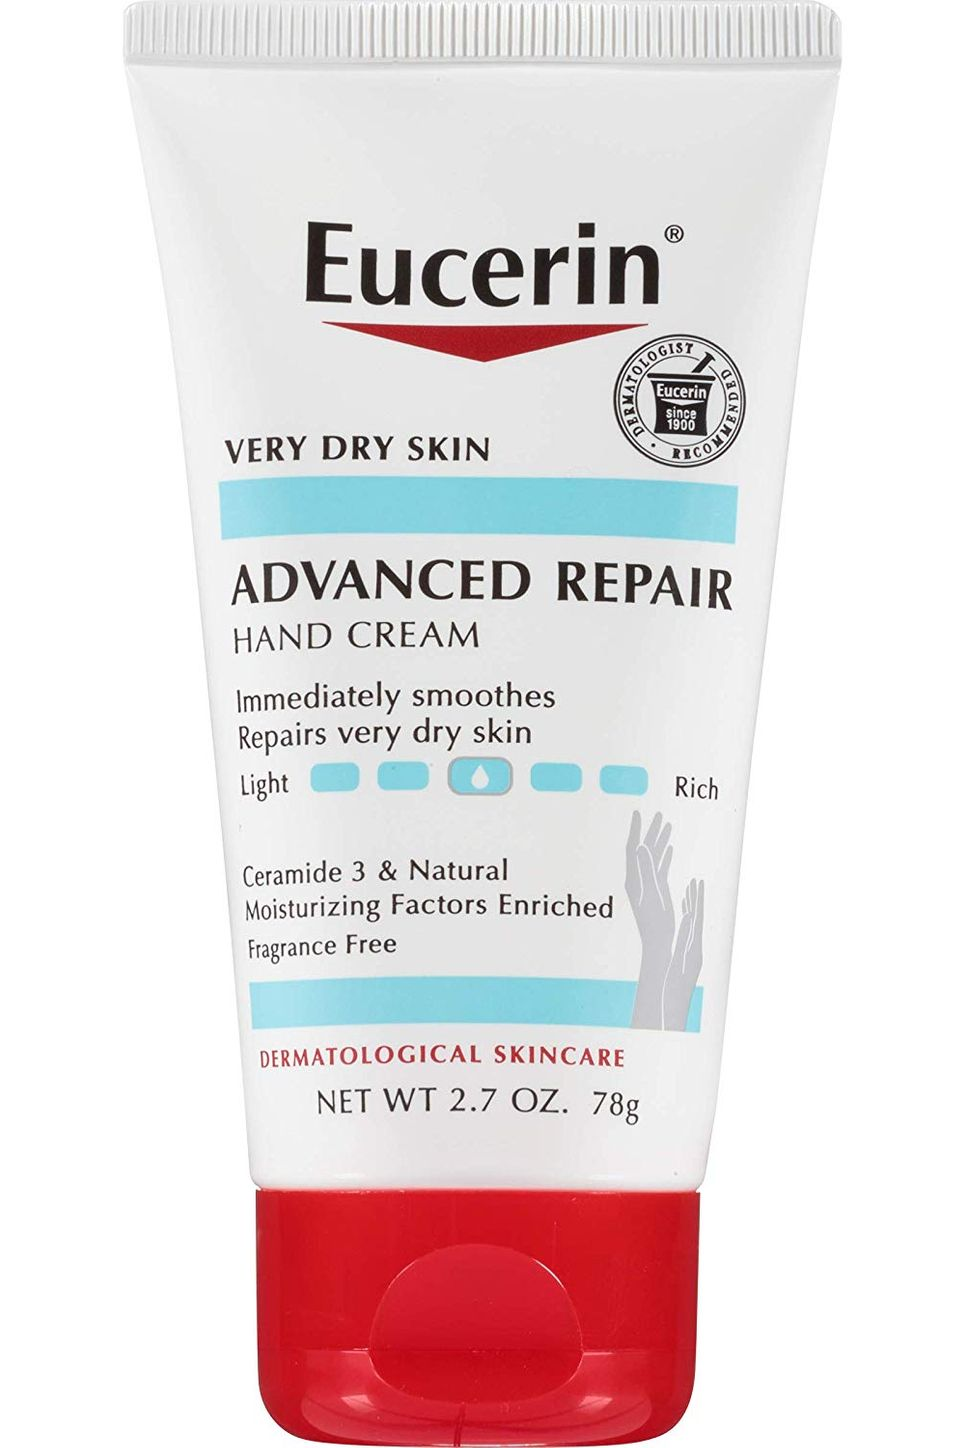 Eucerin Advanced Repair Hand Creme